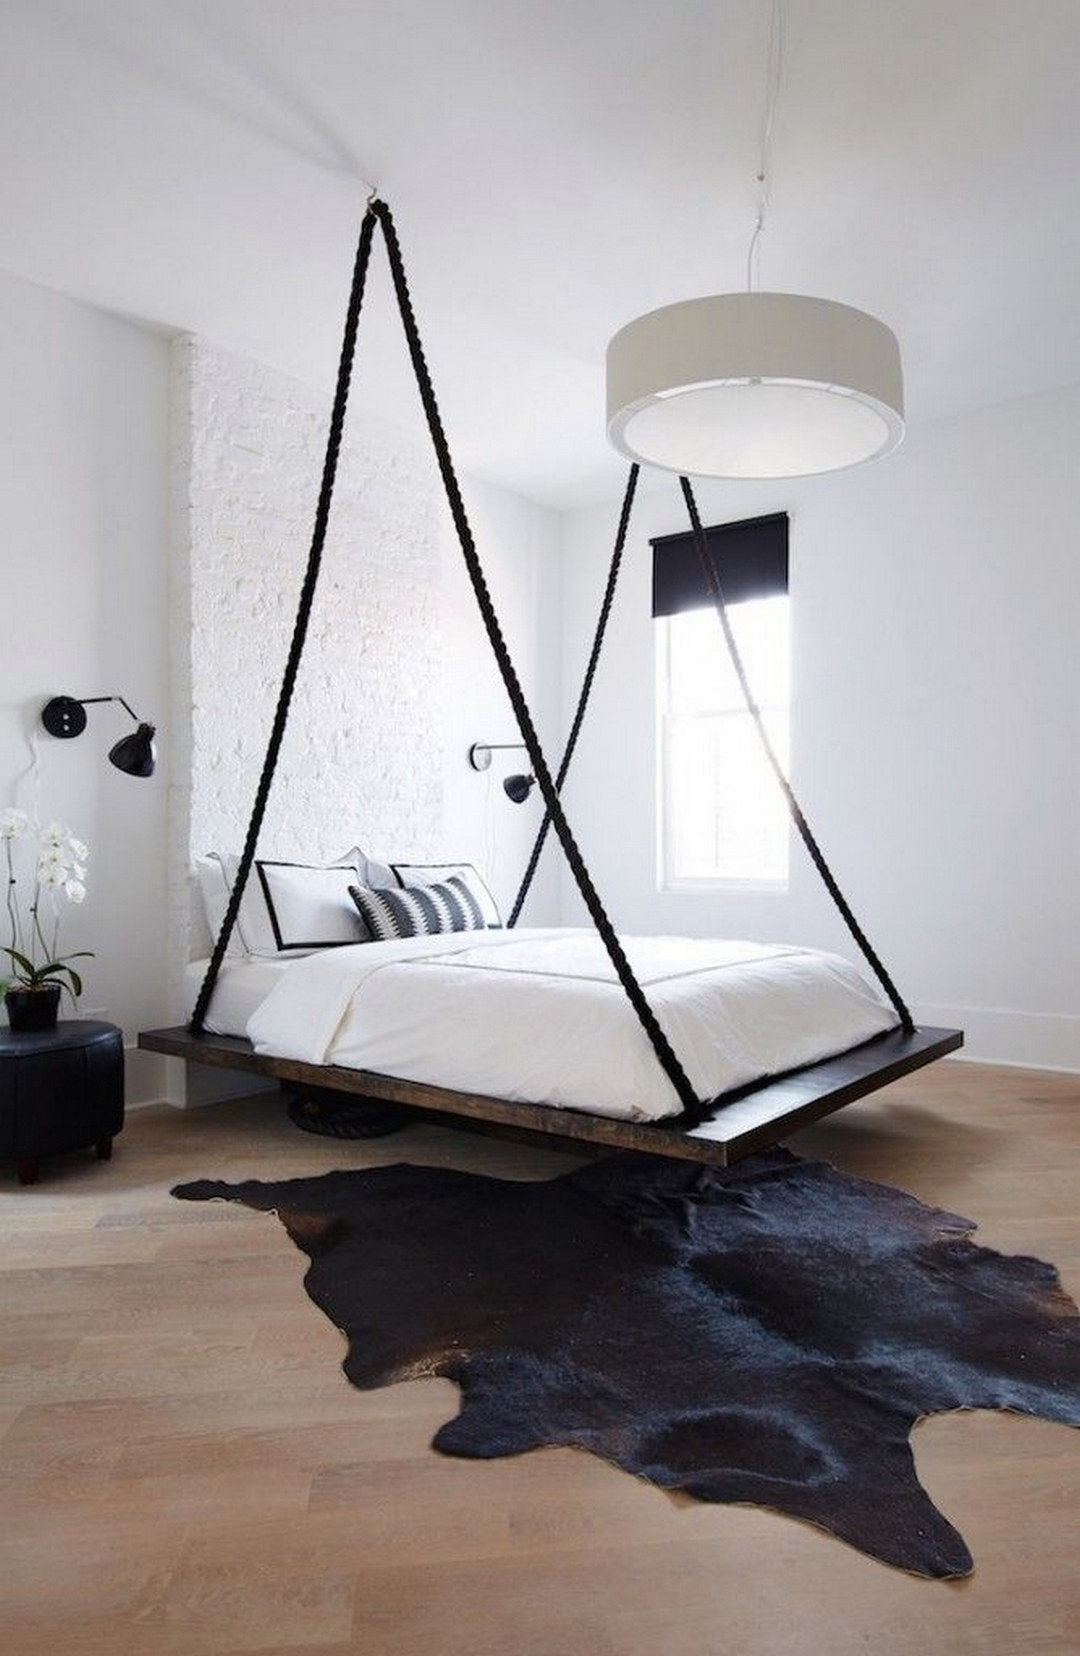 Design Hanging Beds 70 amazing hanging bed designs beds bedrooms and room ideas designs